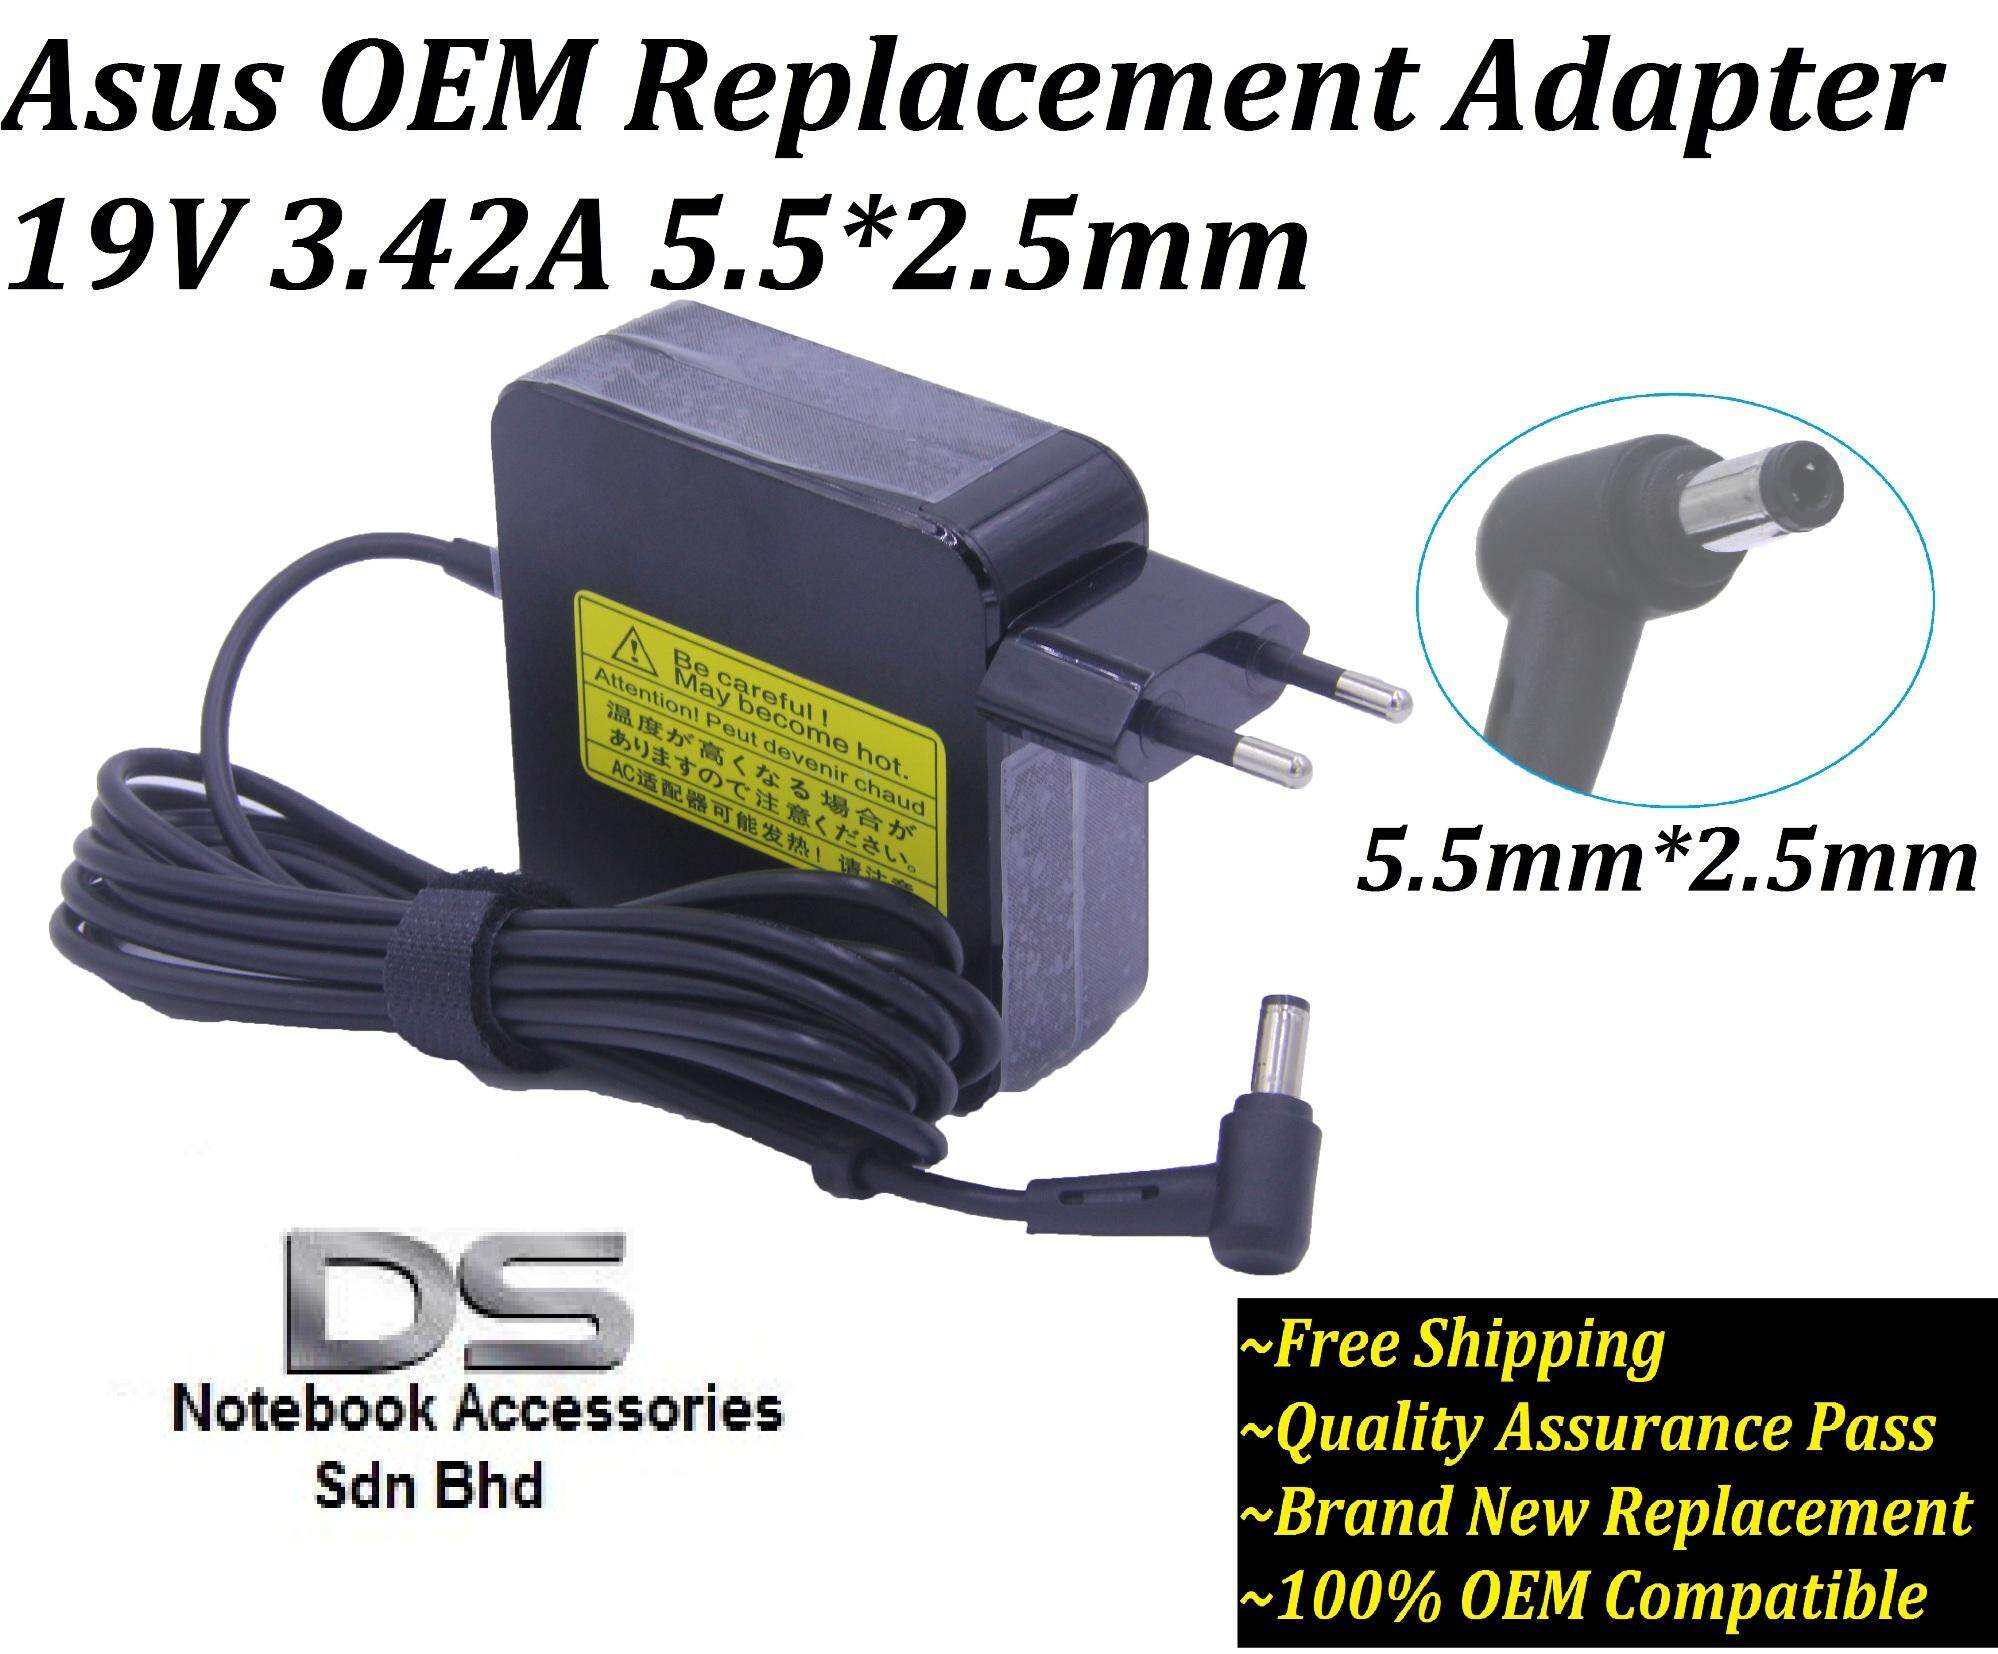 Asus Square Replacement AC Adapter for Asus M2C Series 19V 3.42A 65W 5.5mm*2.5mm / Asus 3.42A (65W) 5.5mm*2.5mm Square Adapter (Europe Pin)